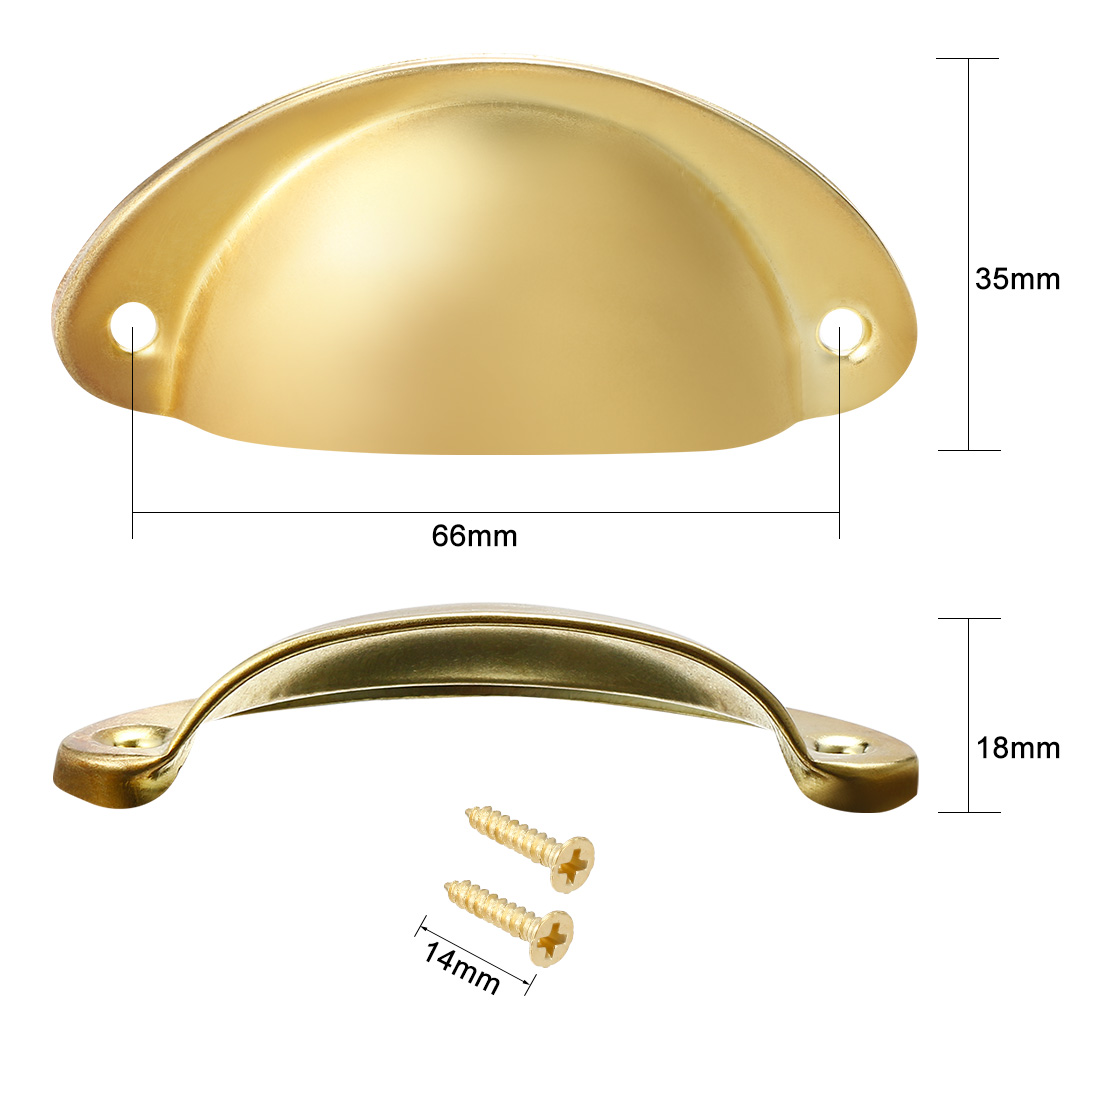 10pcs Cup Drawer Pull Kitchen Cabinet Handle Gold Tone 66mm Hole Centers